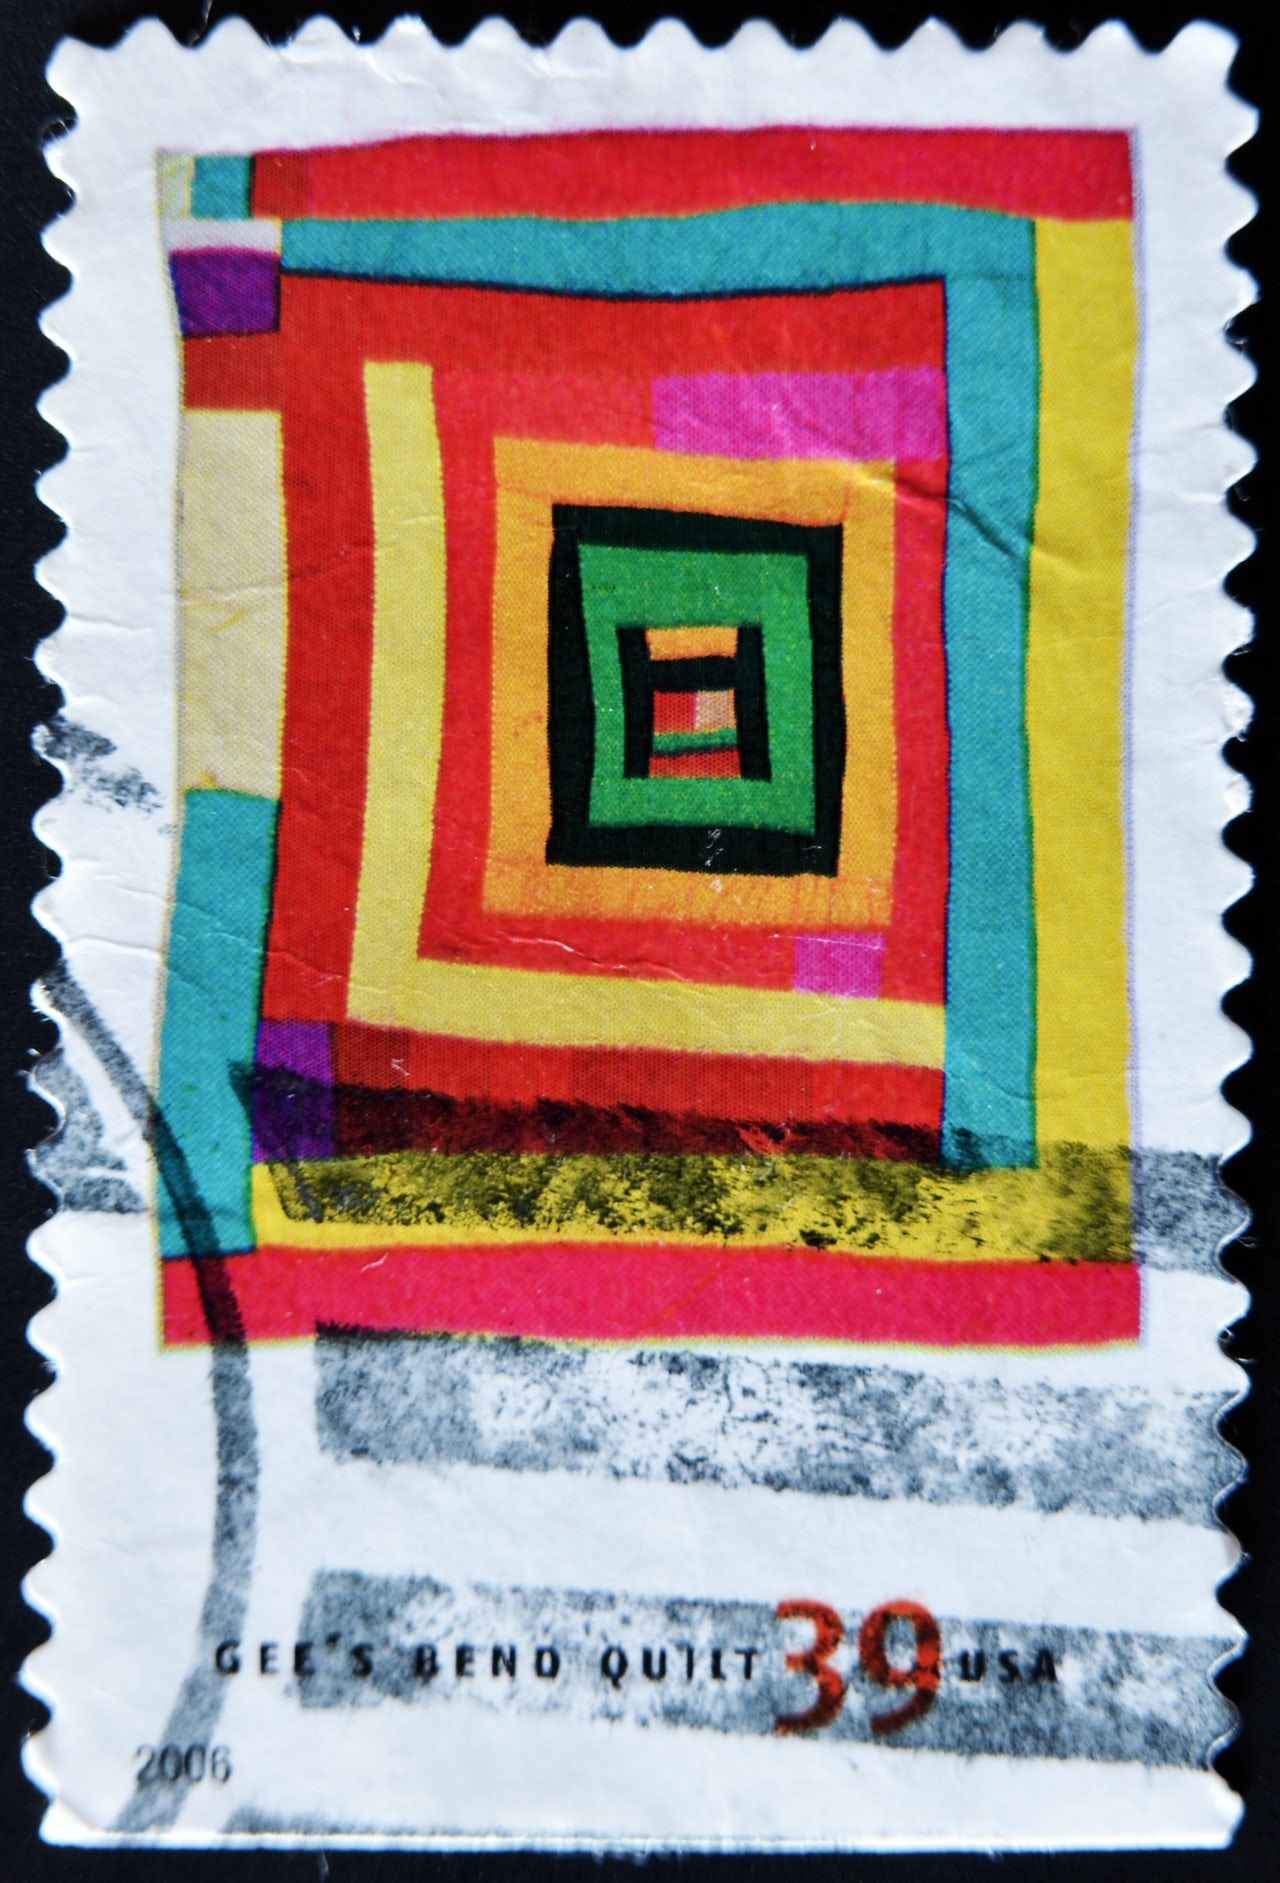 The quilts of Gee's Bend were featured in a 2006 stamp collection.